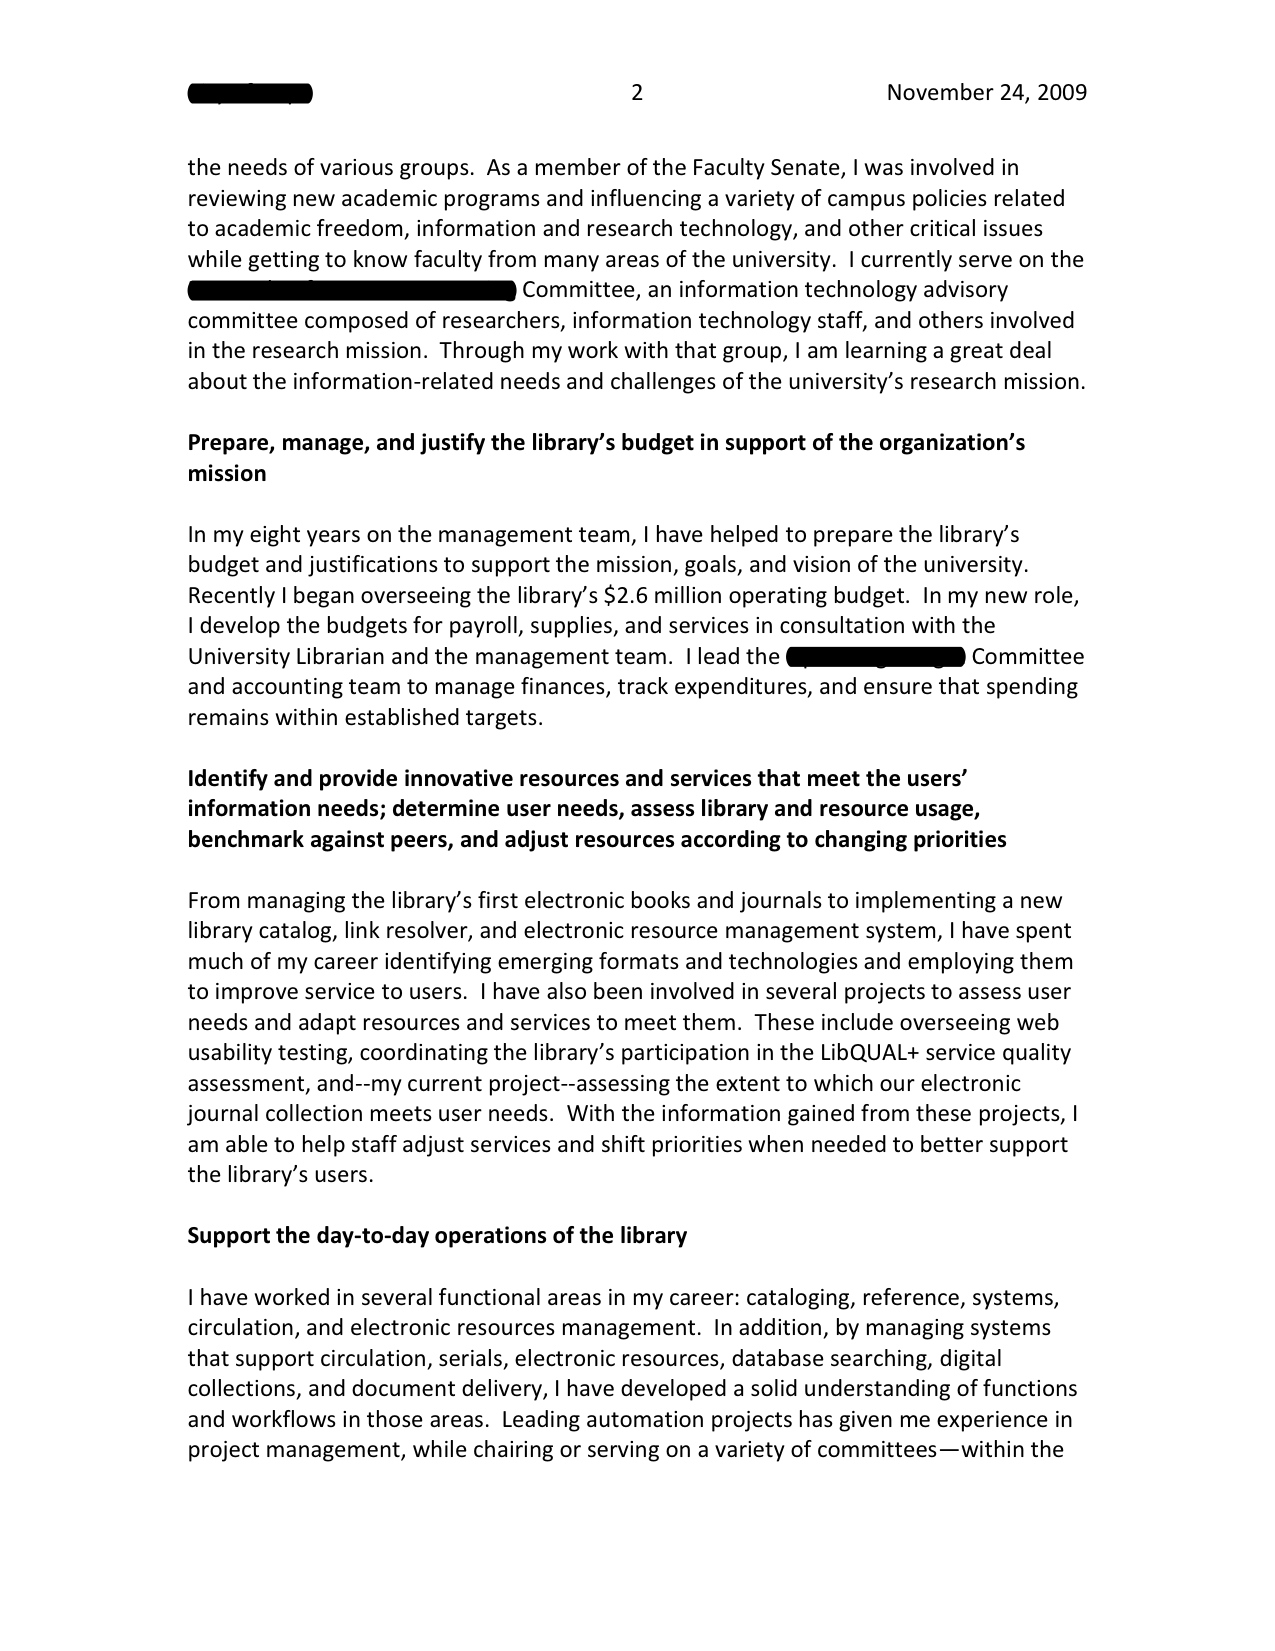 share this cover letter - Science Resume Cover Letter